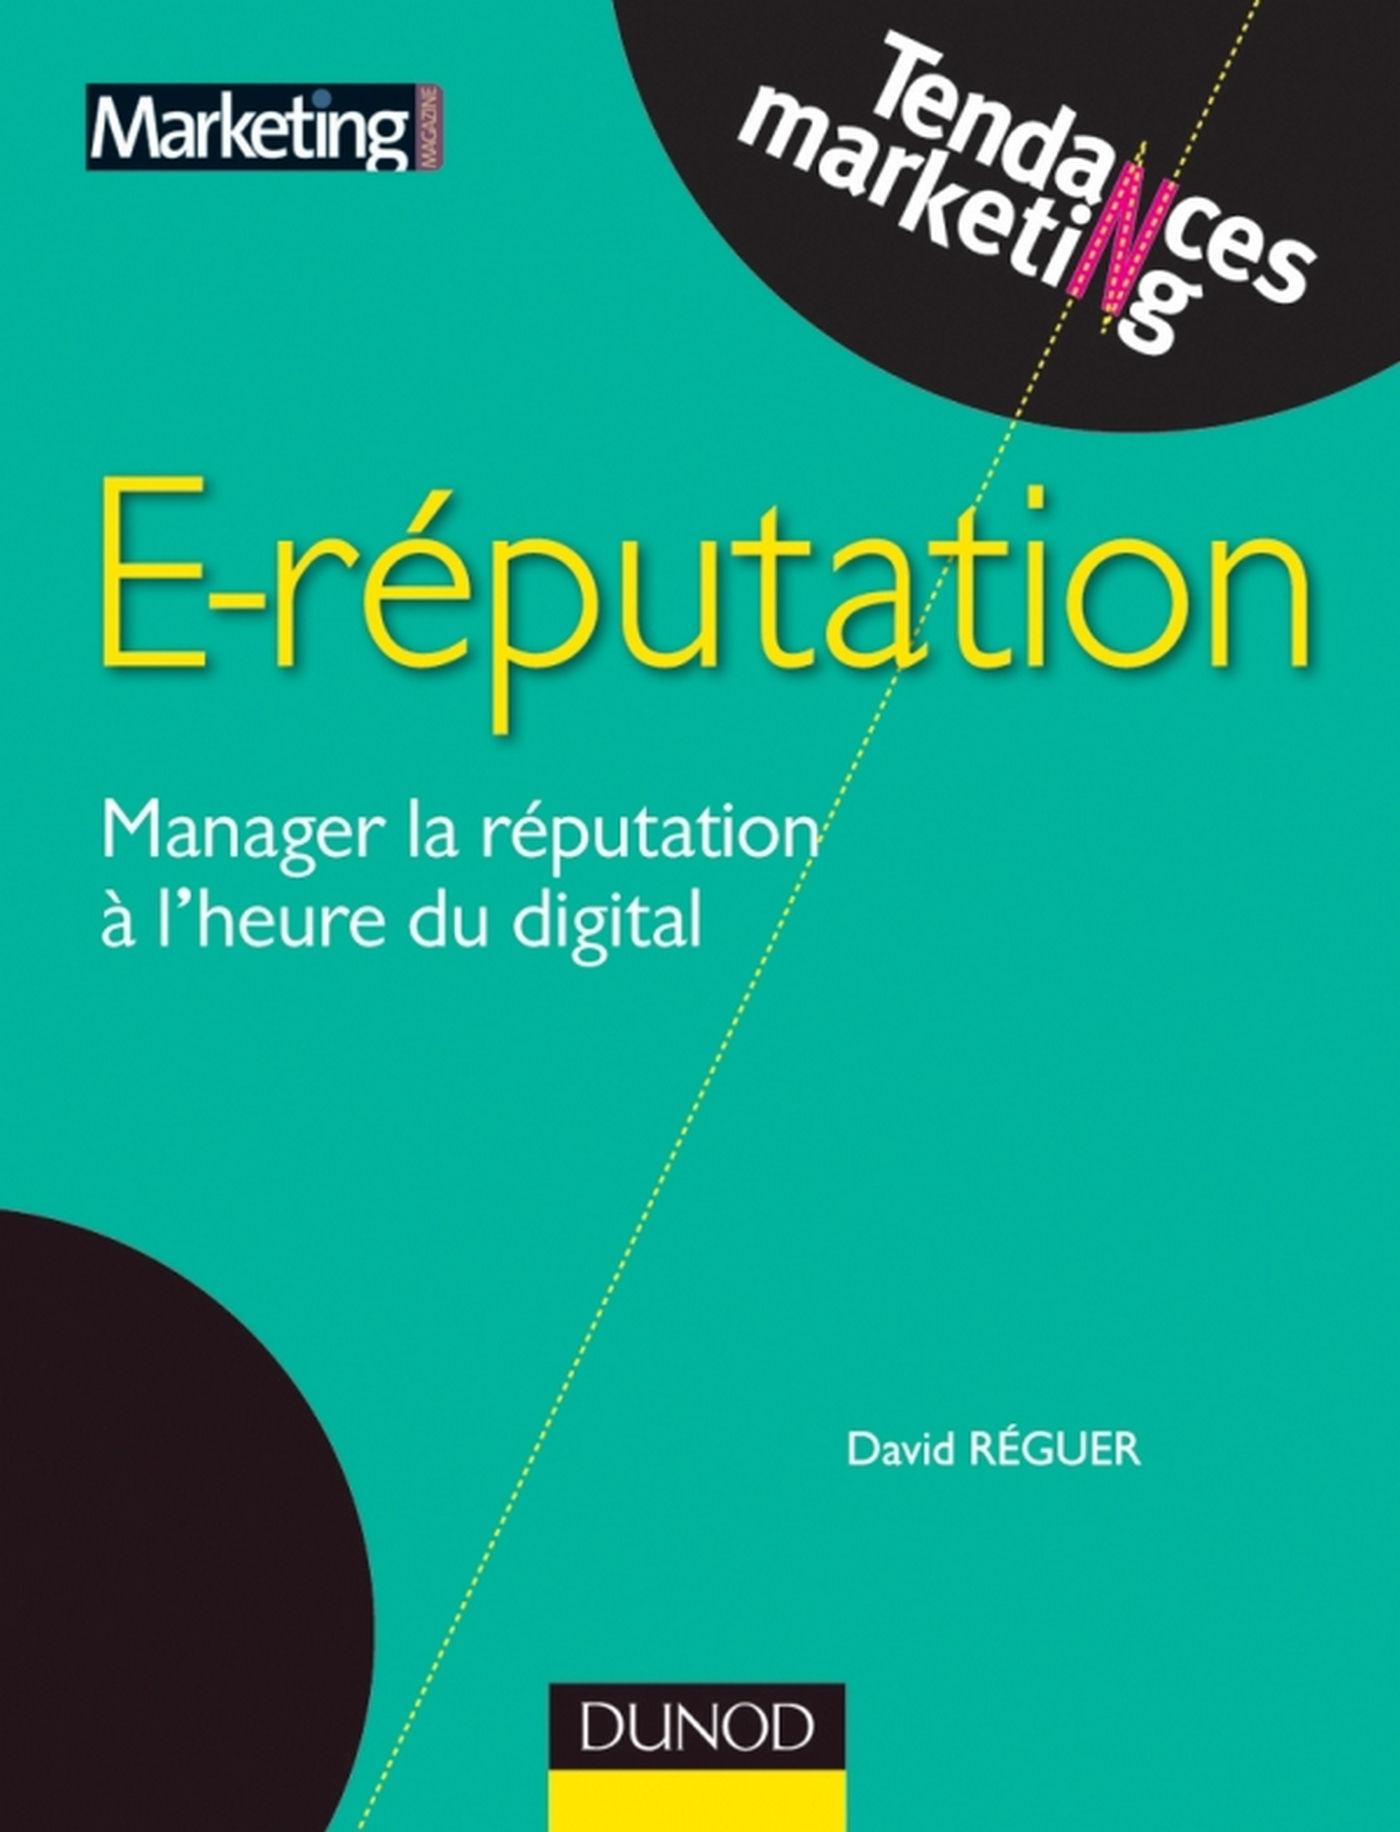 E-reputation, MANAGER LA RÉPUTATION À L'HEURE DU DIGITAL